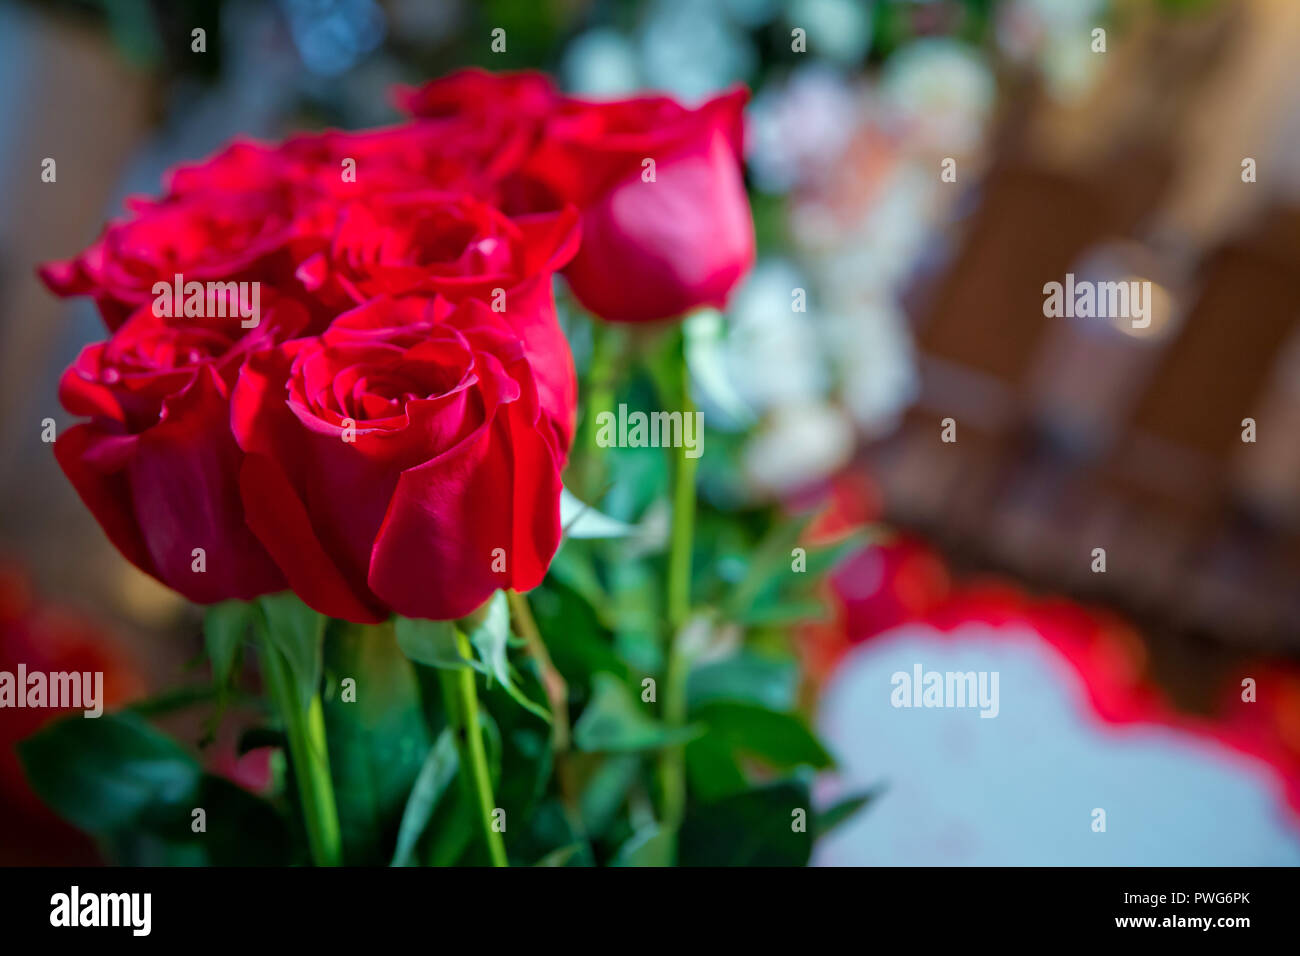 Red Roses Flowers With Valentine Festival And Beautiful Blur Bouquet